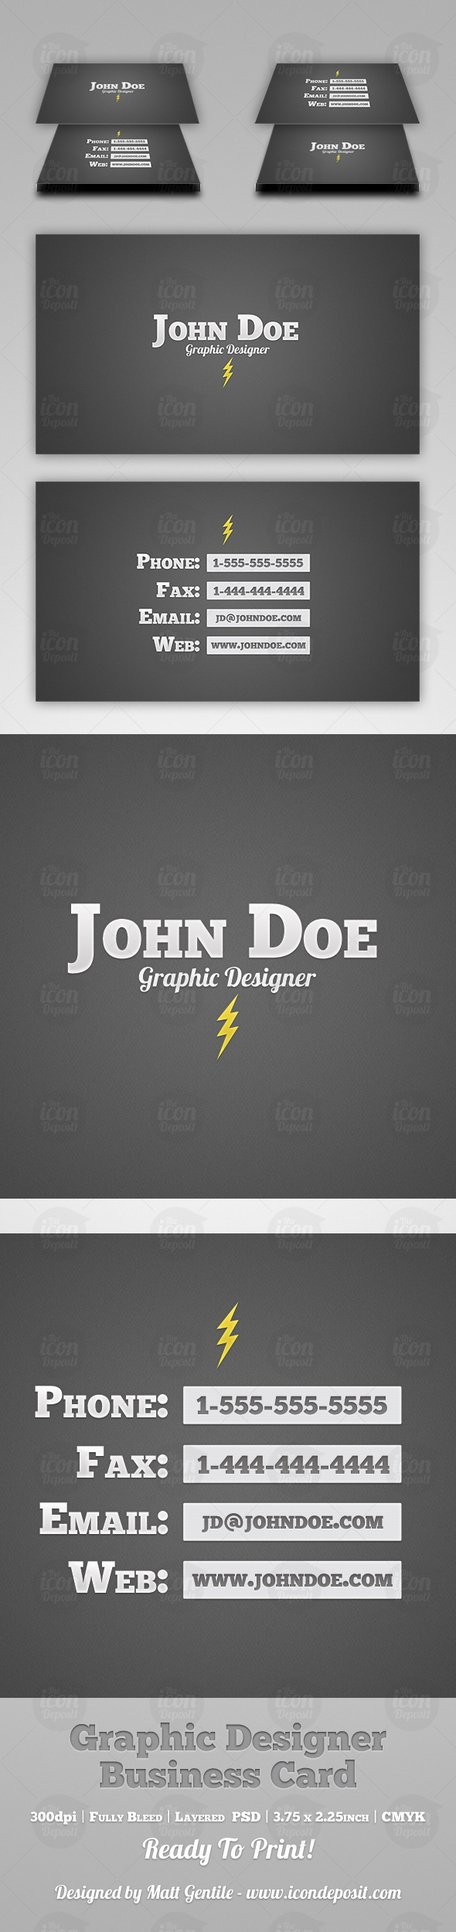 Simple Graphic Designer Business Card